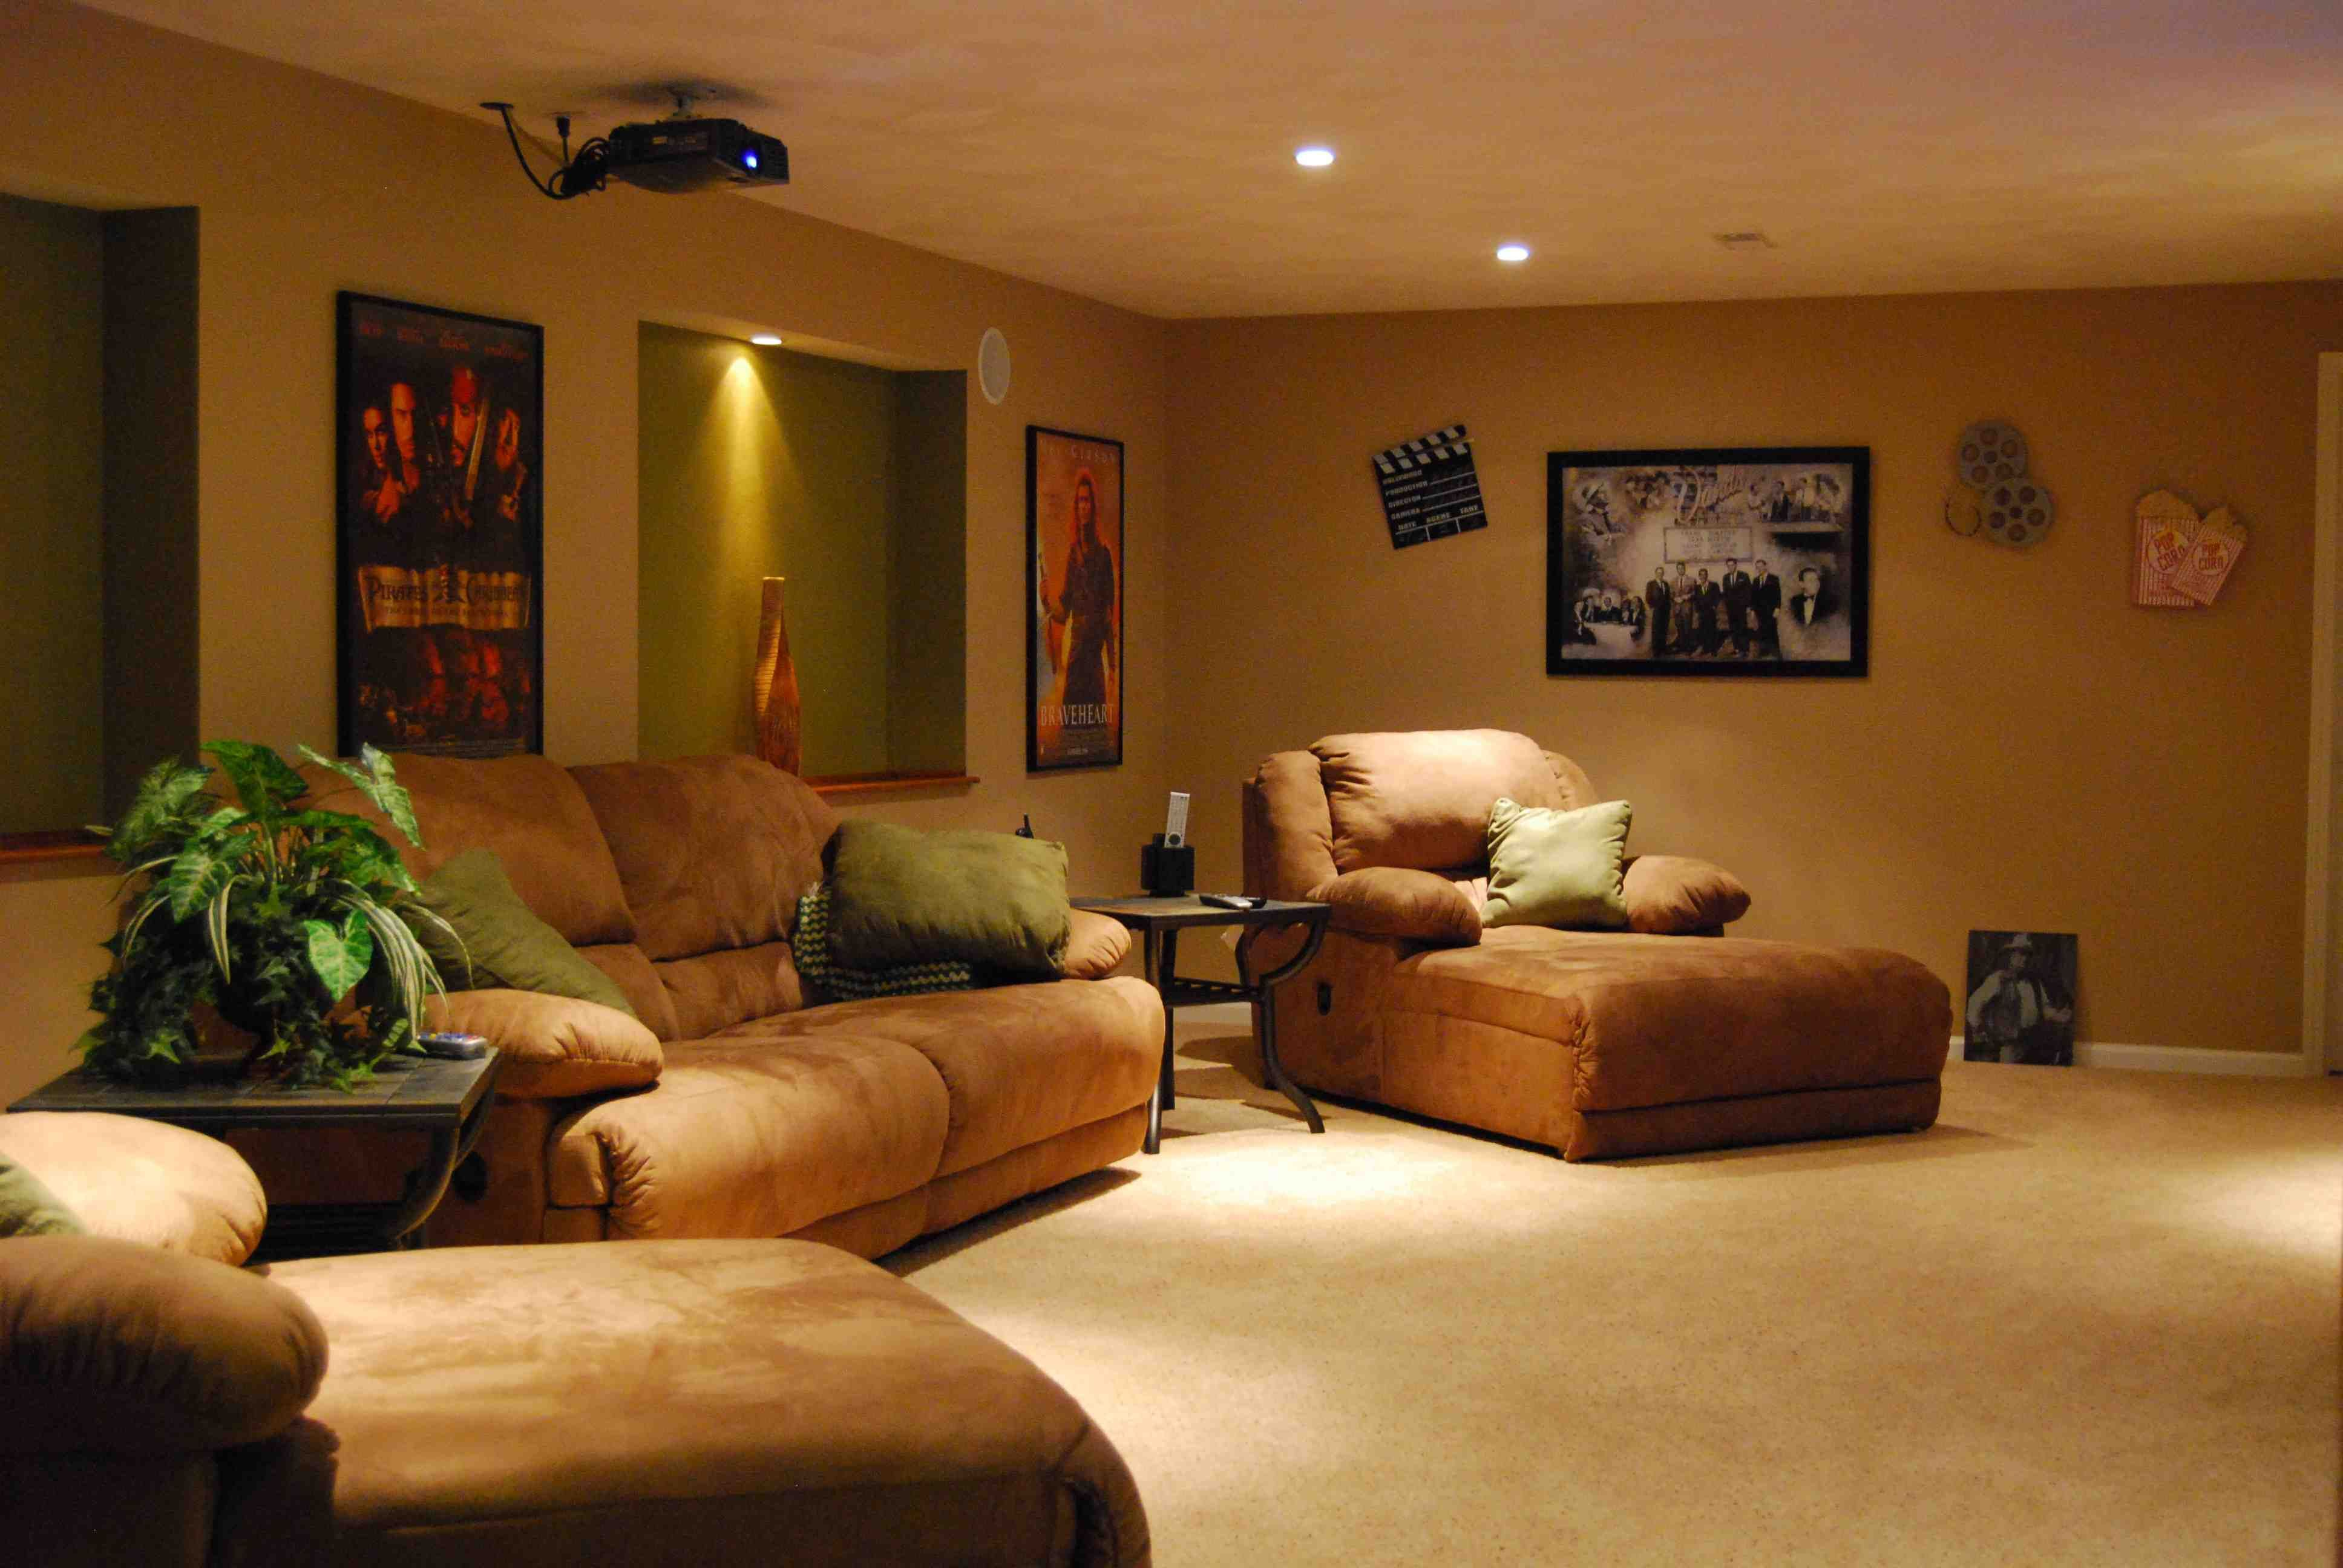 interior design poster - 1000+ images about home theater ideas on Pinterest Home theaters ...